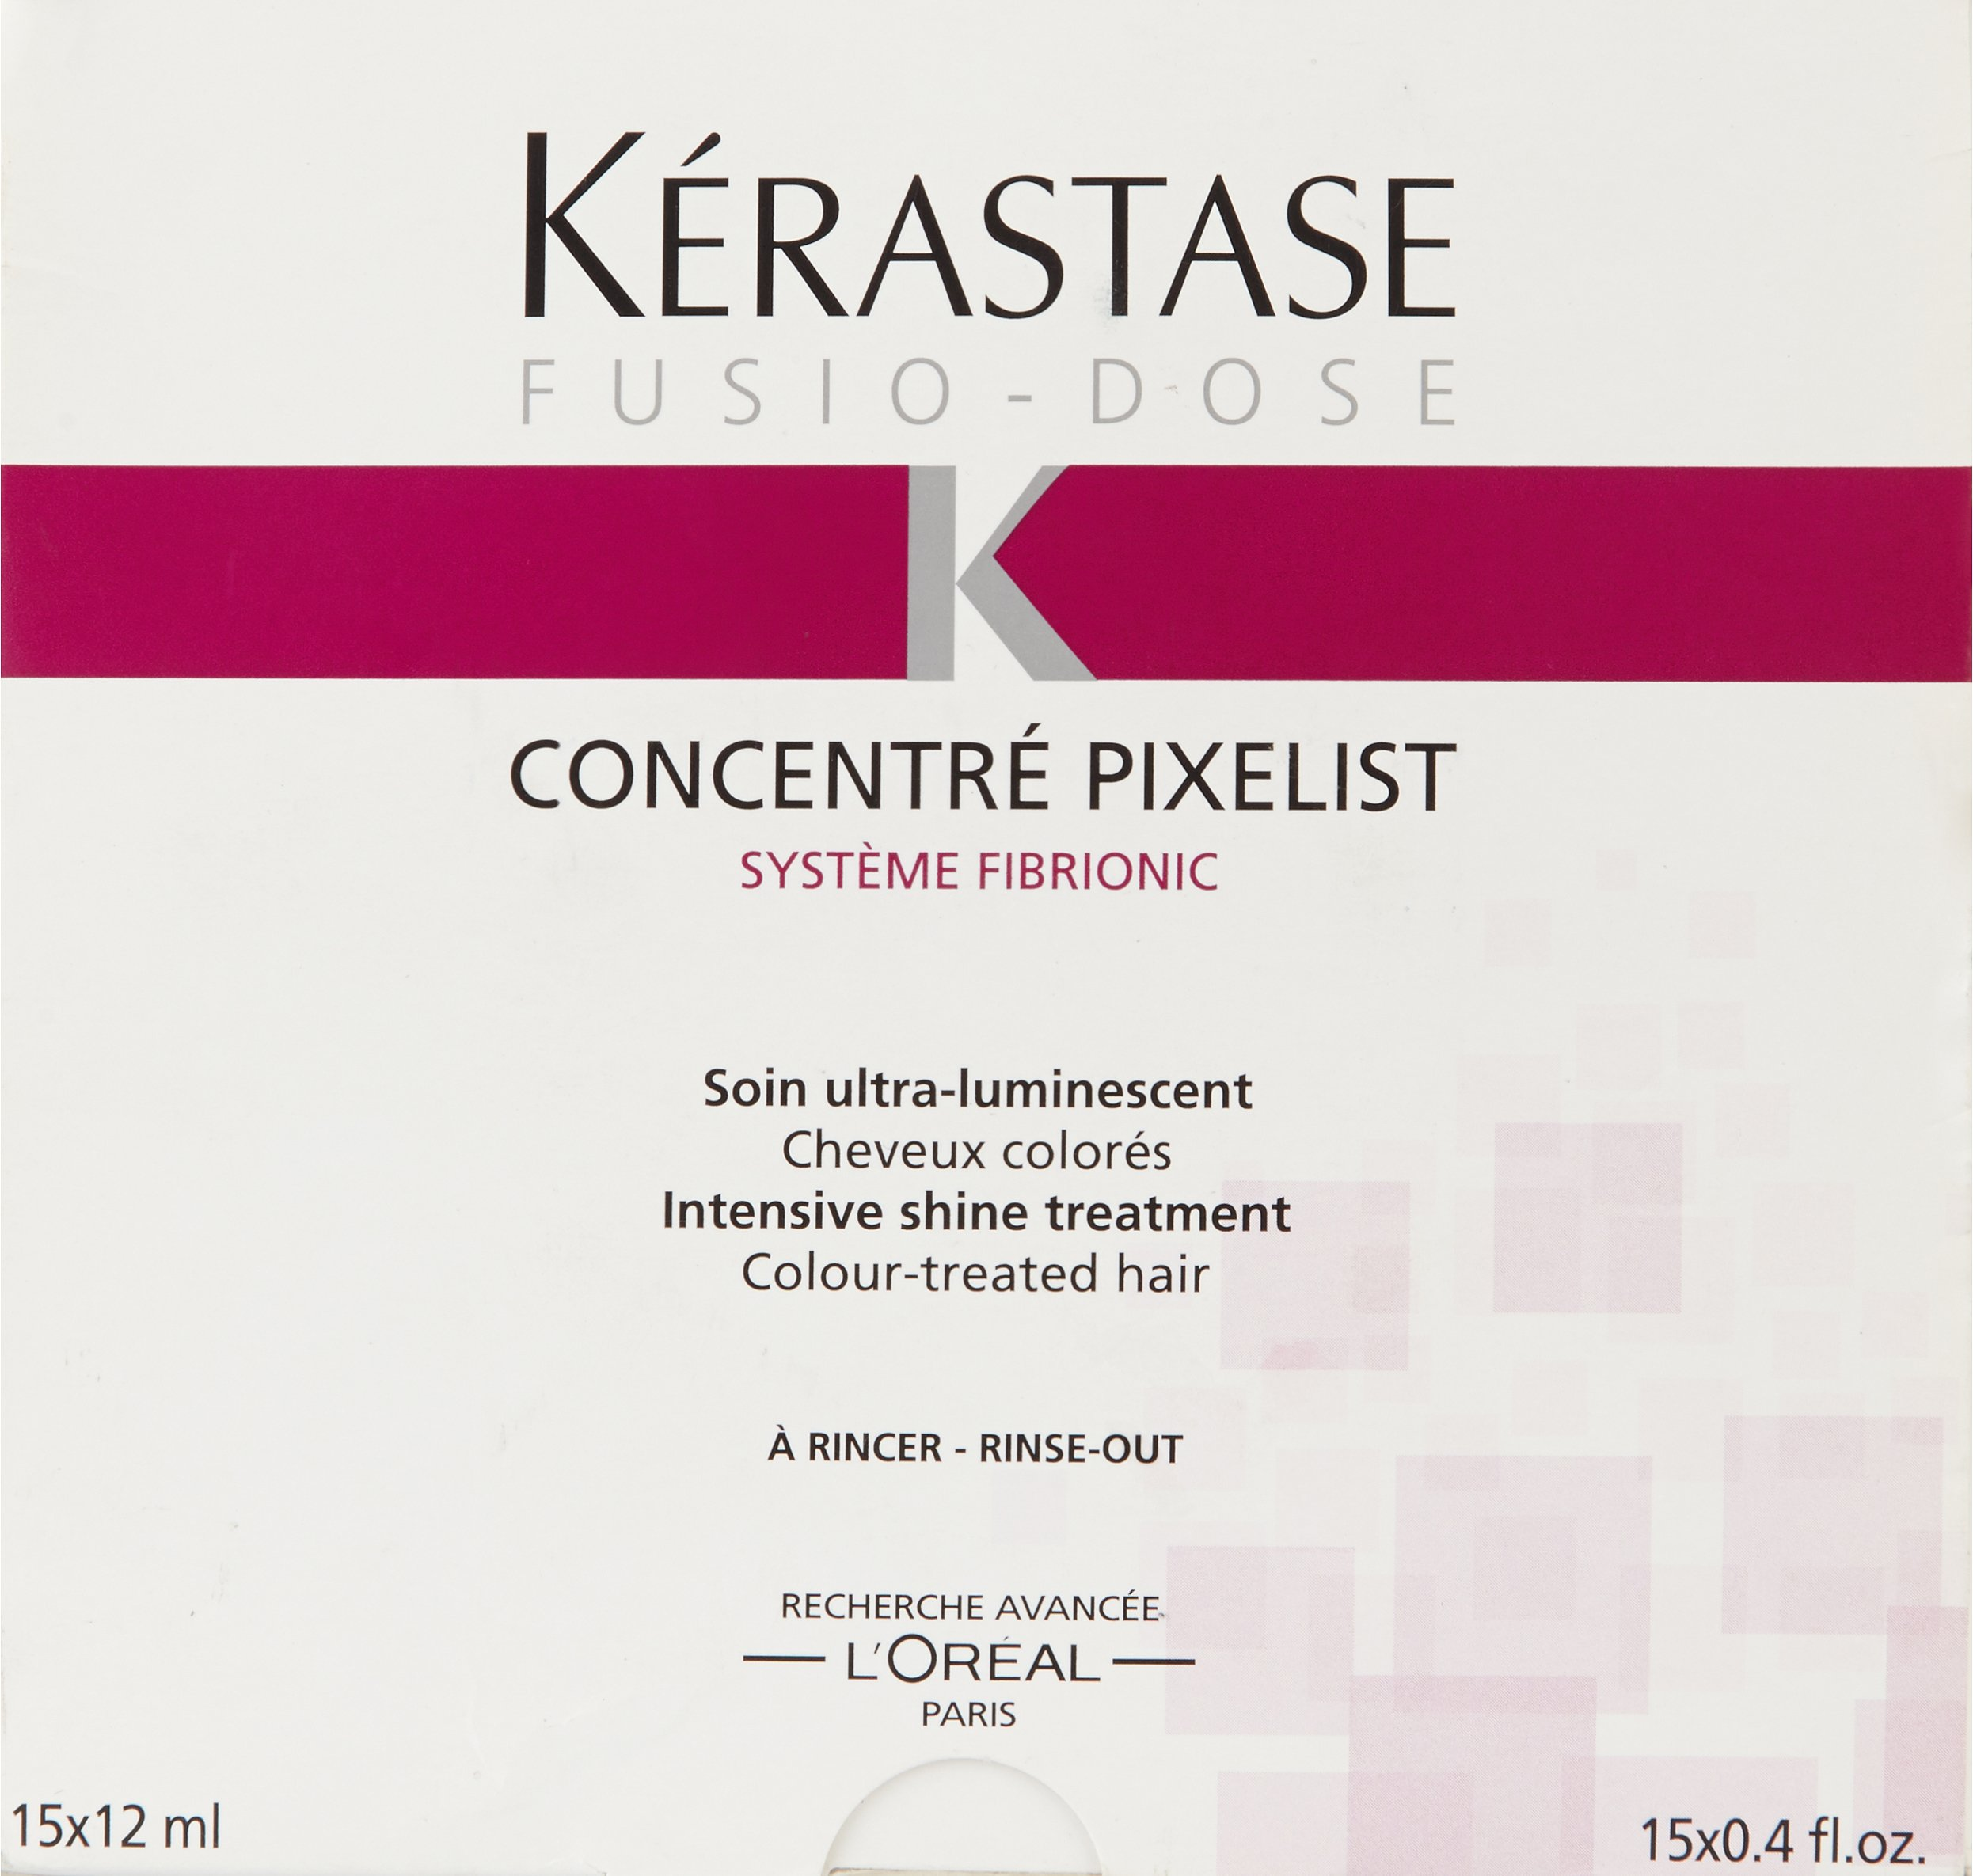 Kerastase Fusio-Dose Concentre Pixelist Intensive Shine Treatment for Unisex, 0.4 Fl Oz, 15 Count